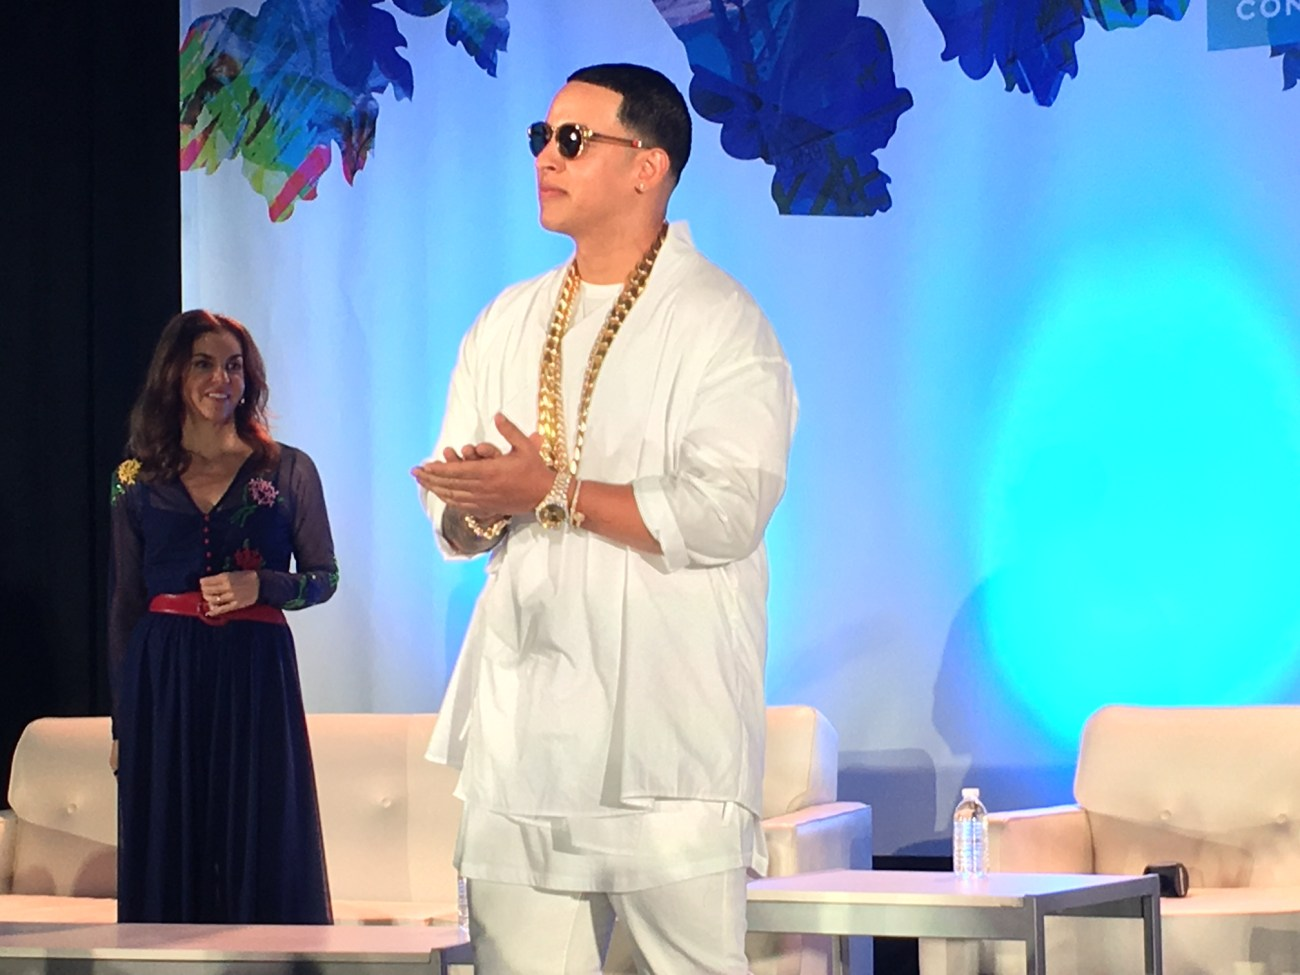 Daddy Yankee shared interesting tidbits about the Reggaeton music genre at the Billboards.